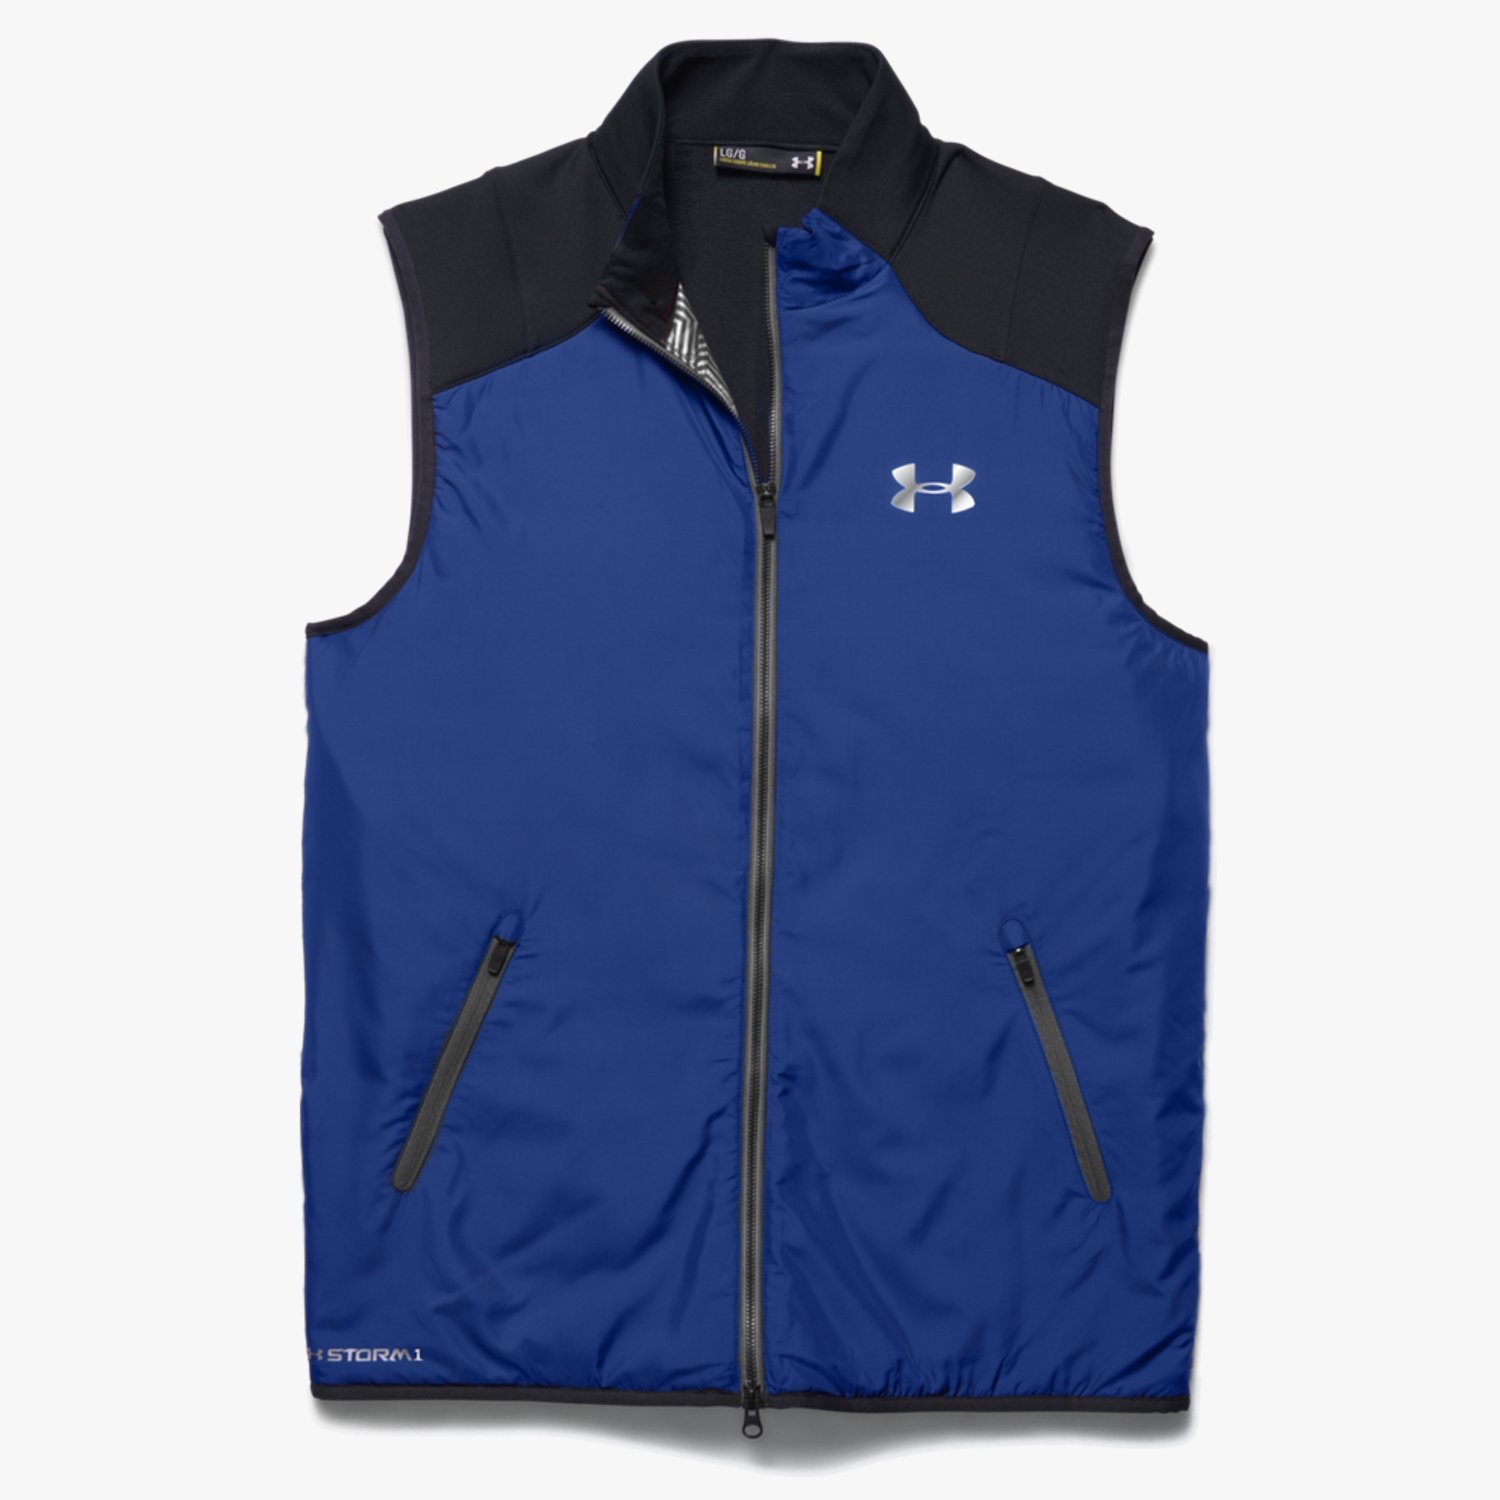 7 Gilets to keep you warm this winter